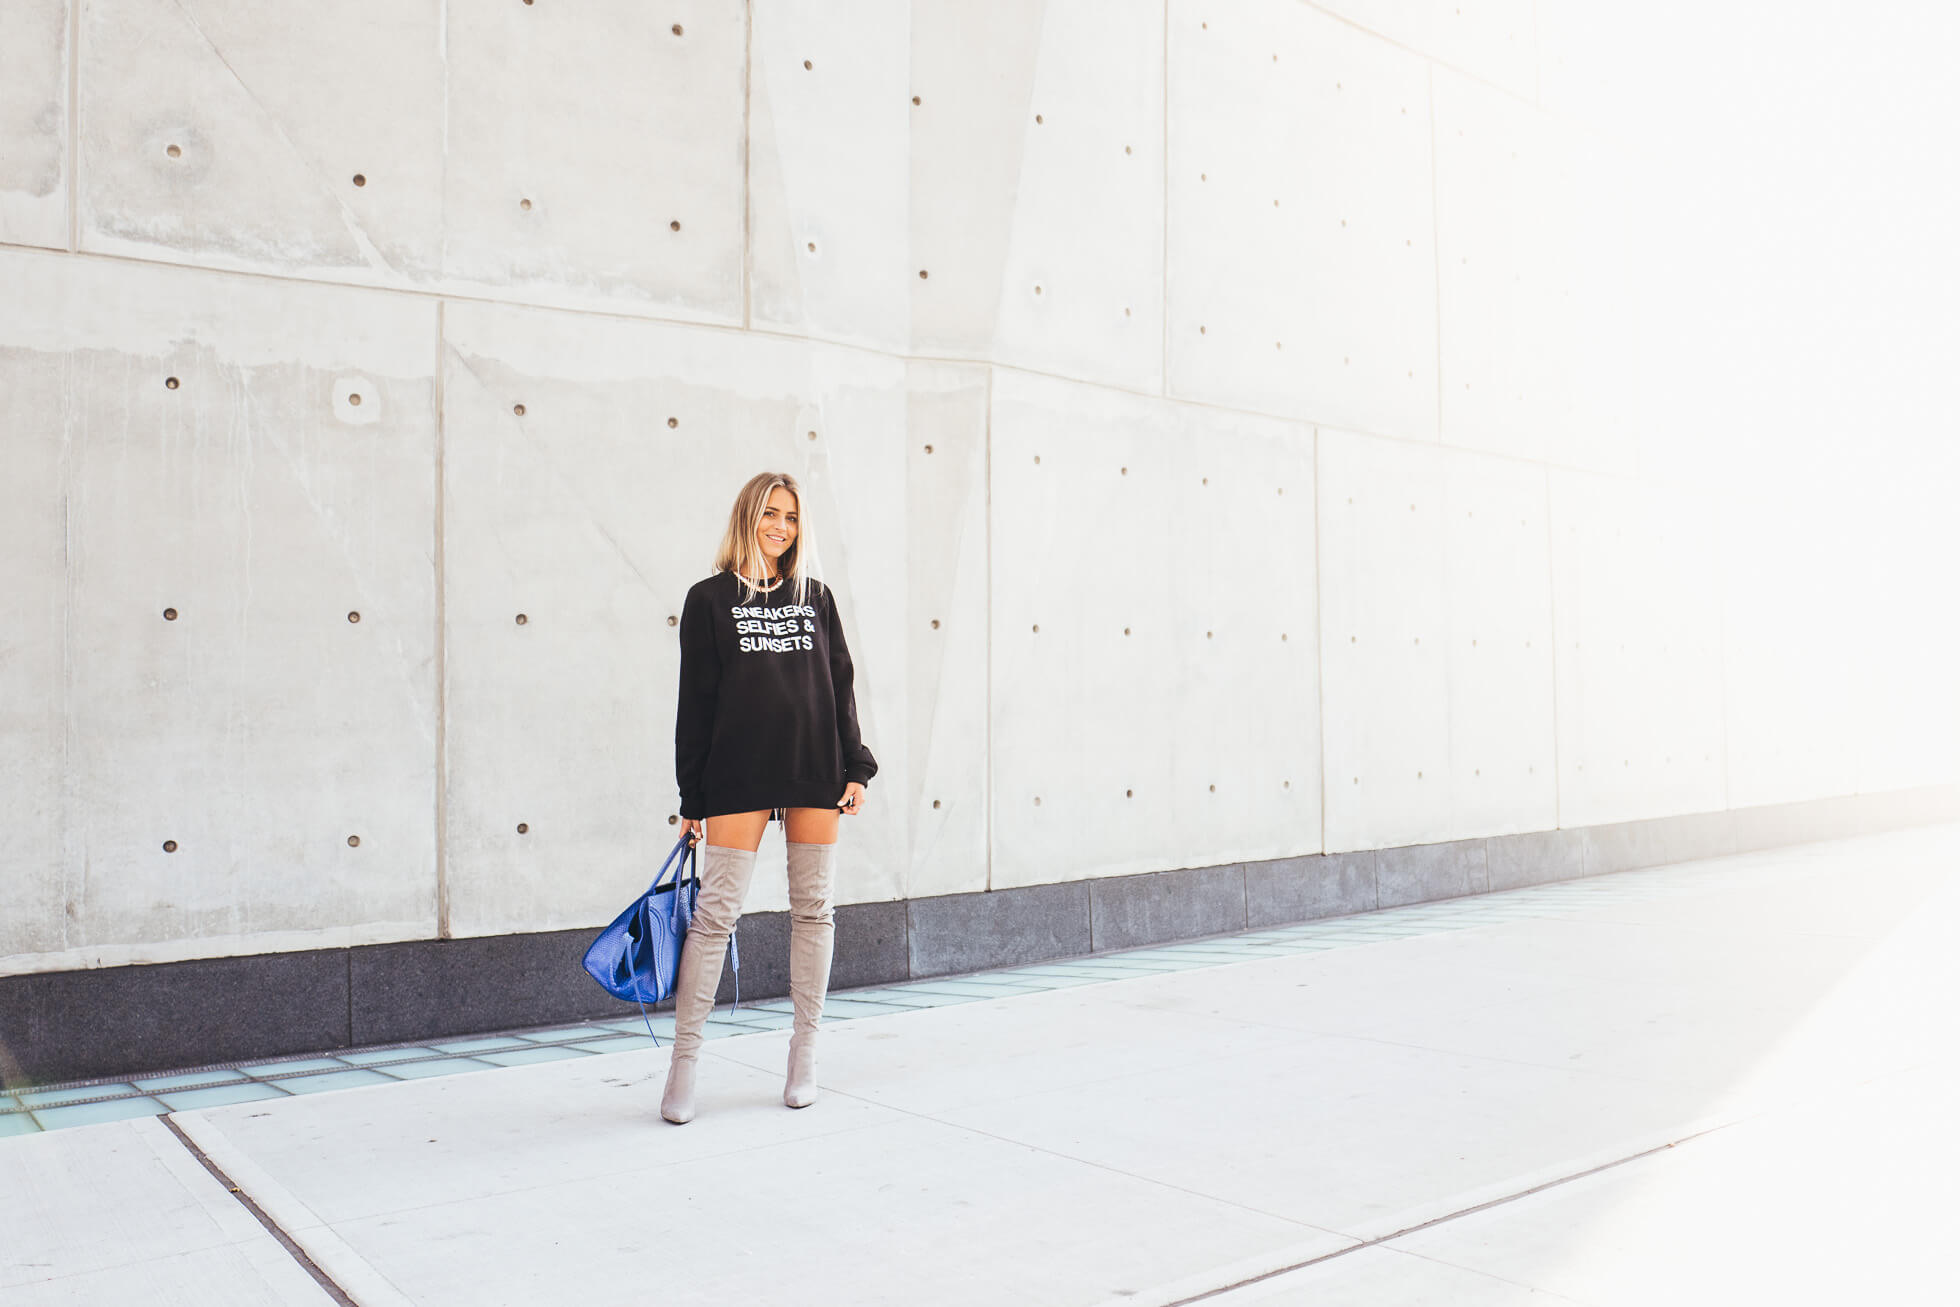 janni-deler-sneakers-selfies-sunsets-sweaterL1090971